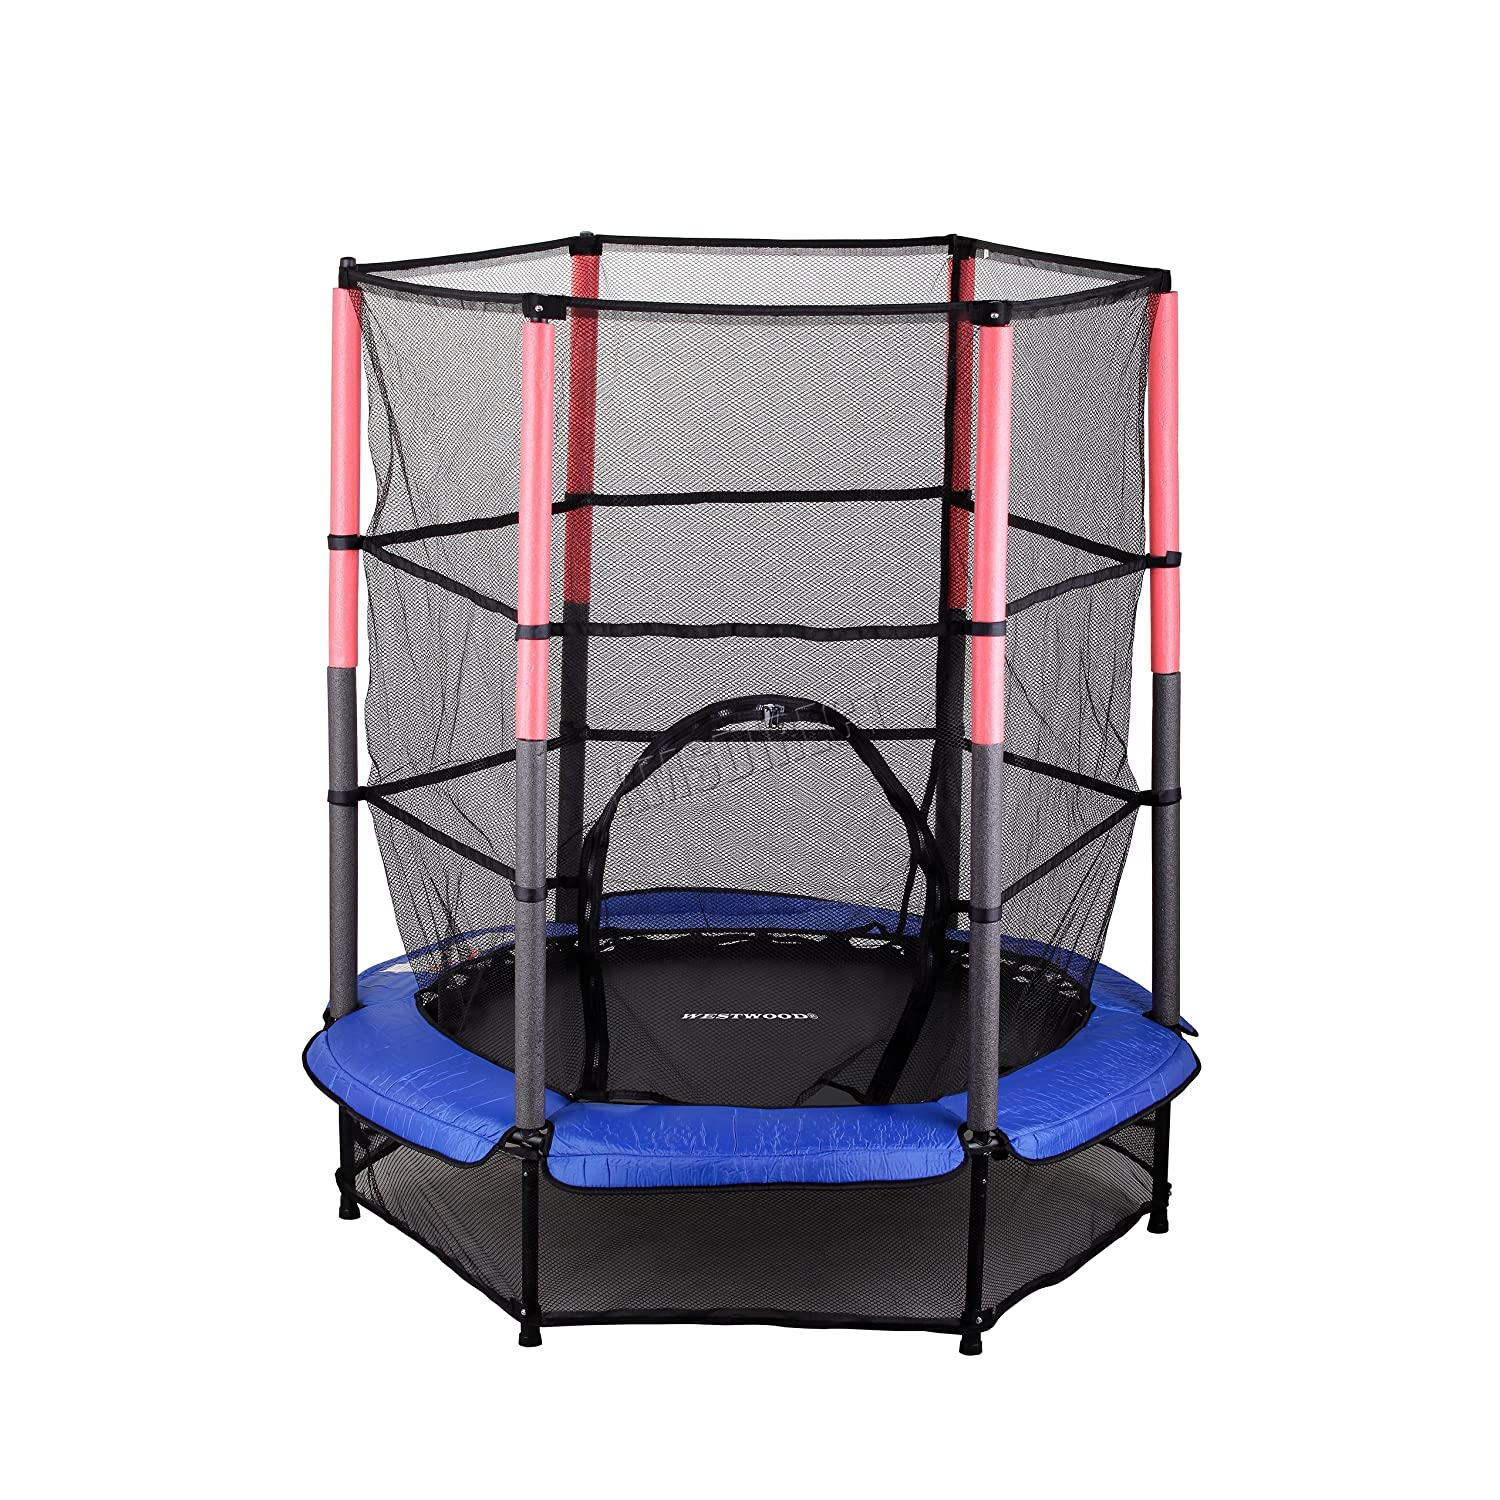 "WestWood 4.5FT 55"" Junior Trampoline With Enclosure Safety Net Kids Child Indoor Outdoor Activity Blue New KMS"